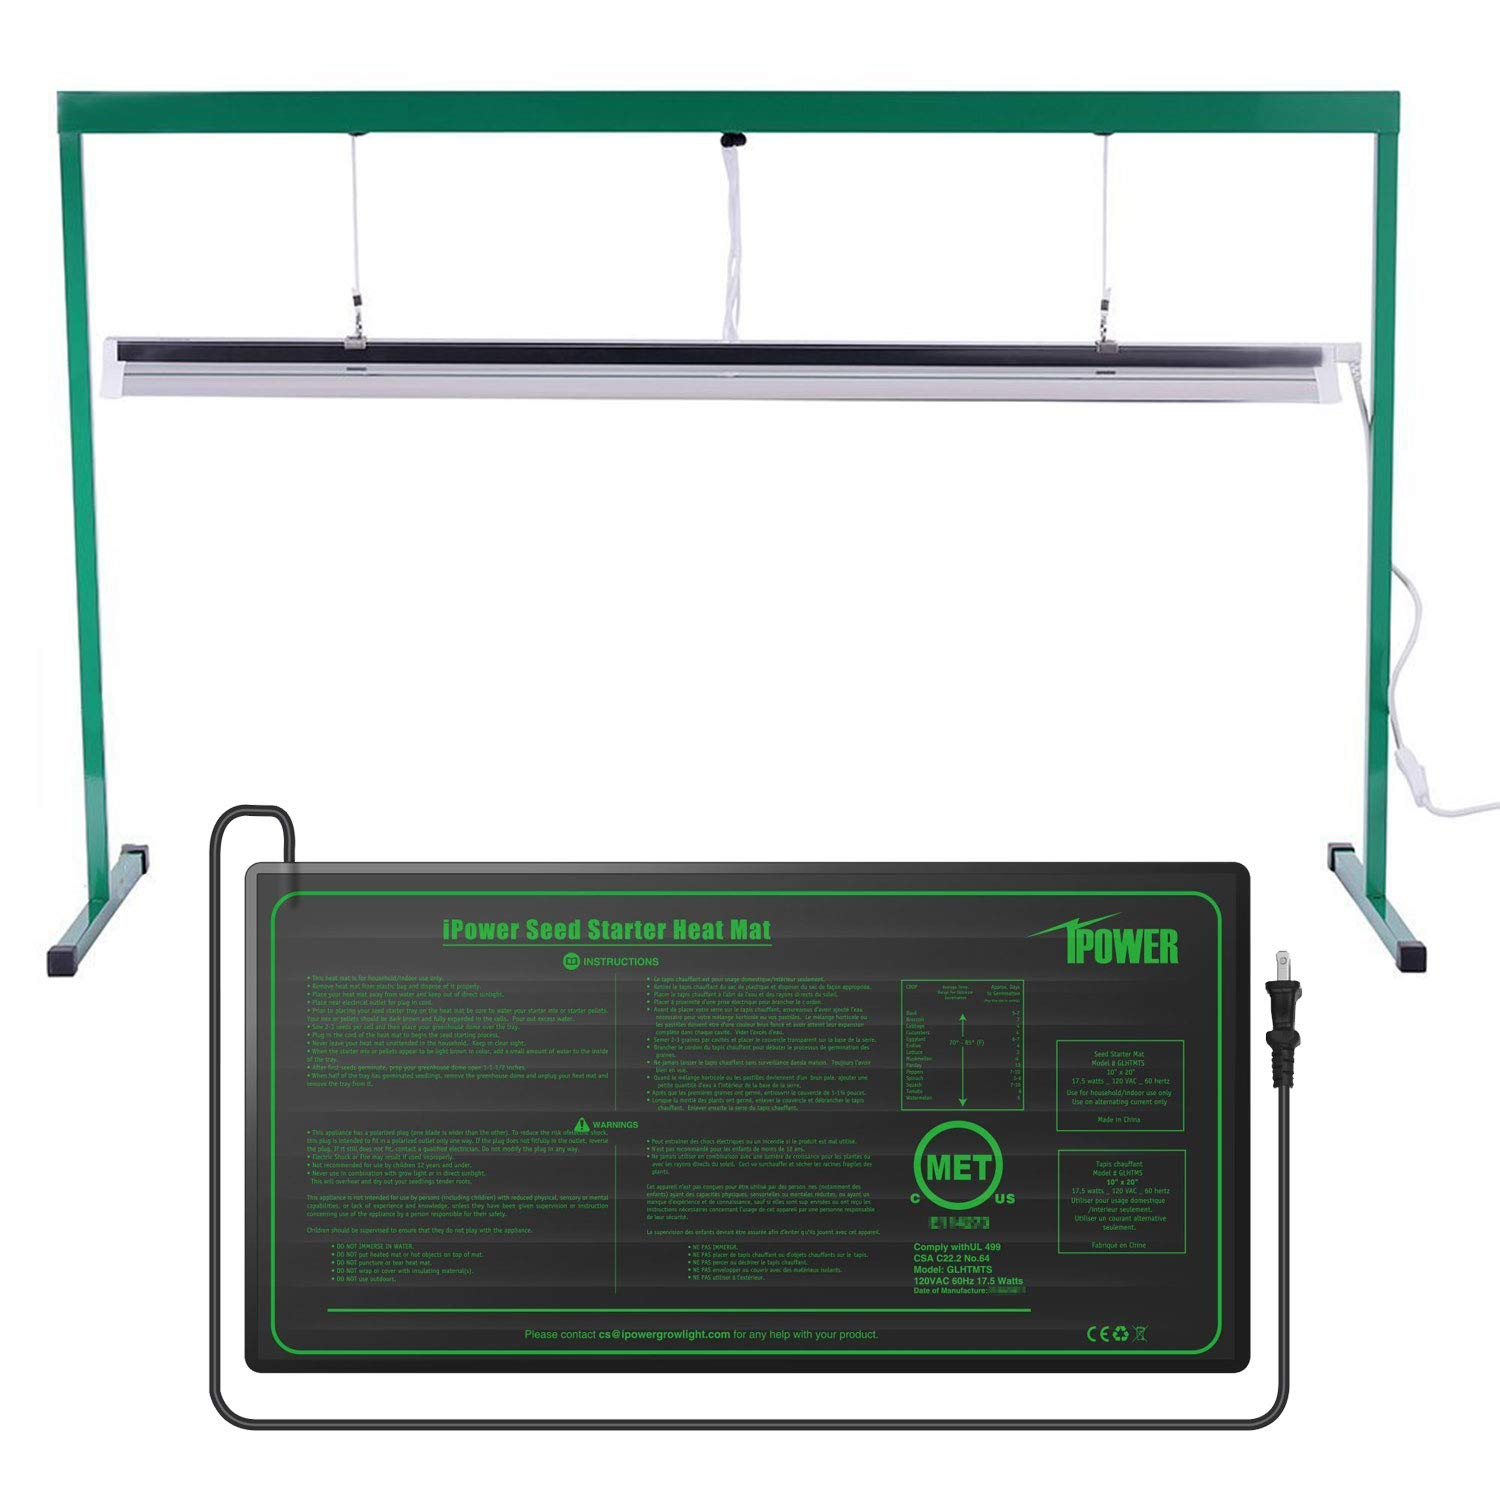 iPower GLSTNDT54FHTMTS 54W 4 Feet T5 Fluorescent Grow Light Stand Rack (6400K) and 10'' x 20.5'' Hydroponic Seedling Heat Mat Combo Set for Seed Germination, Green